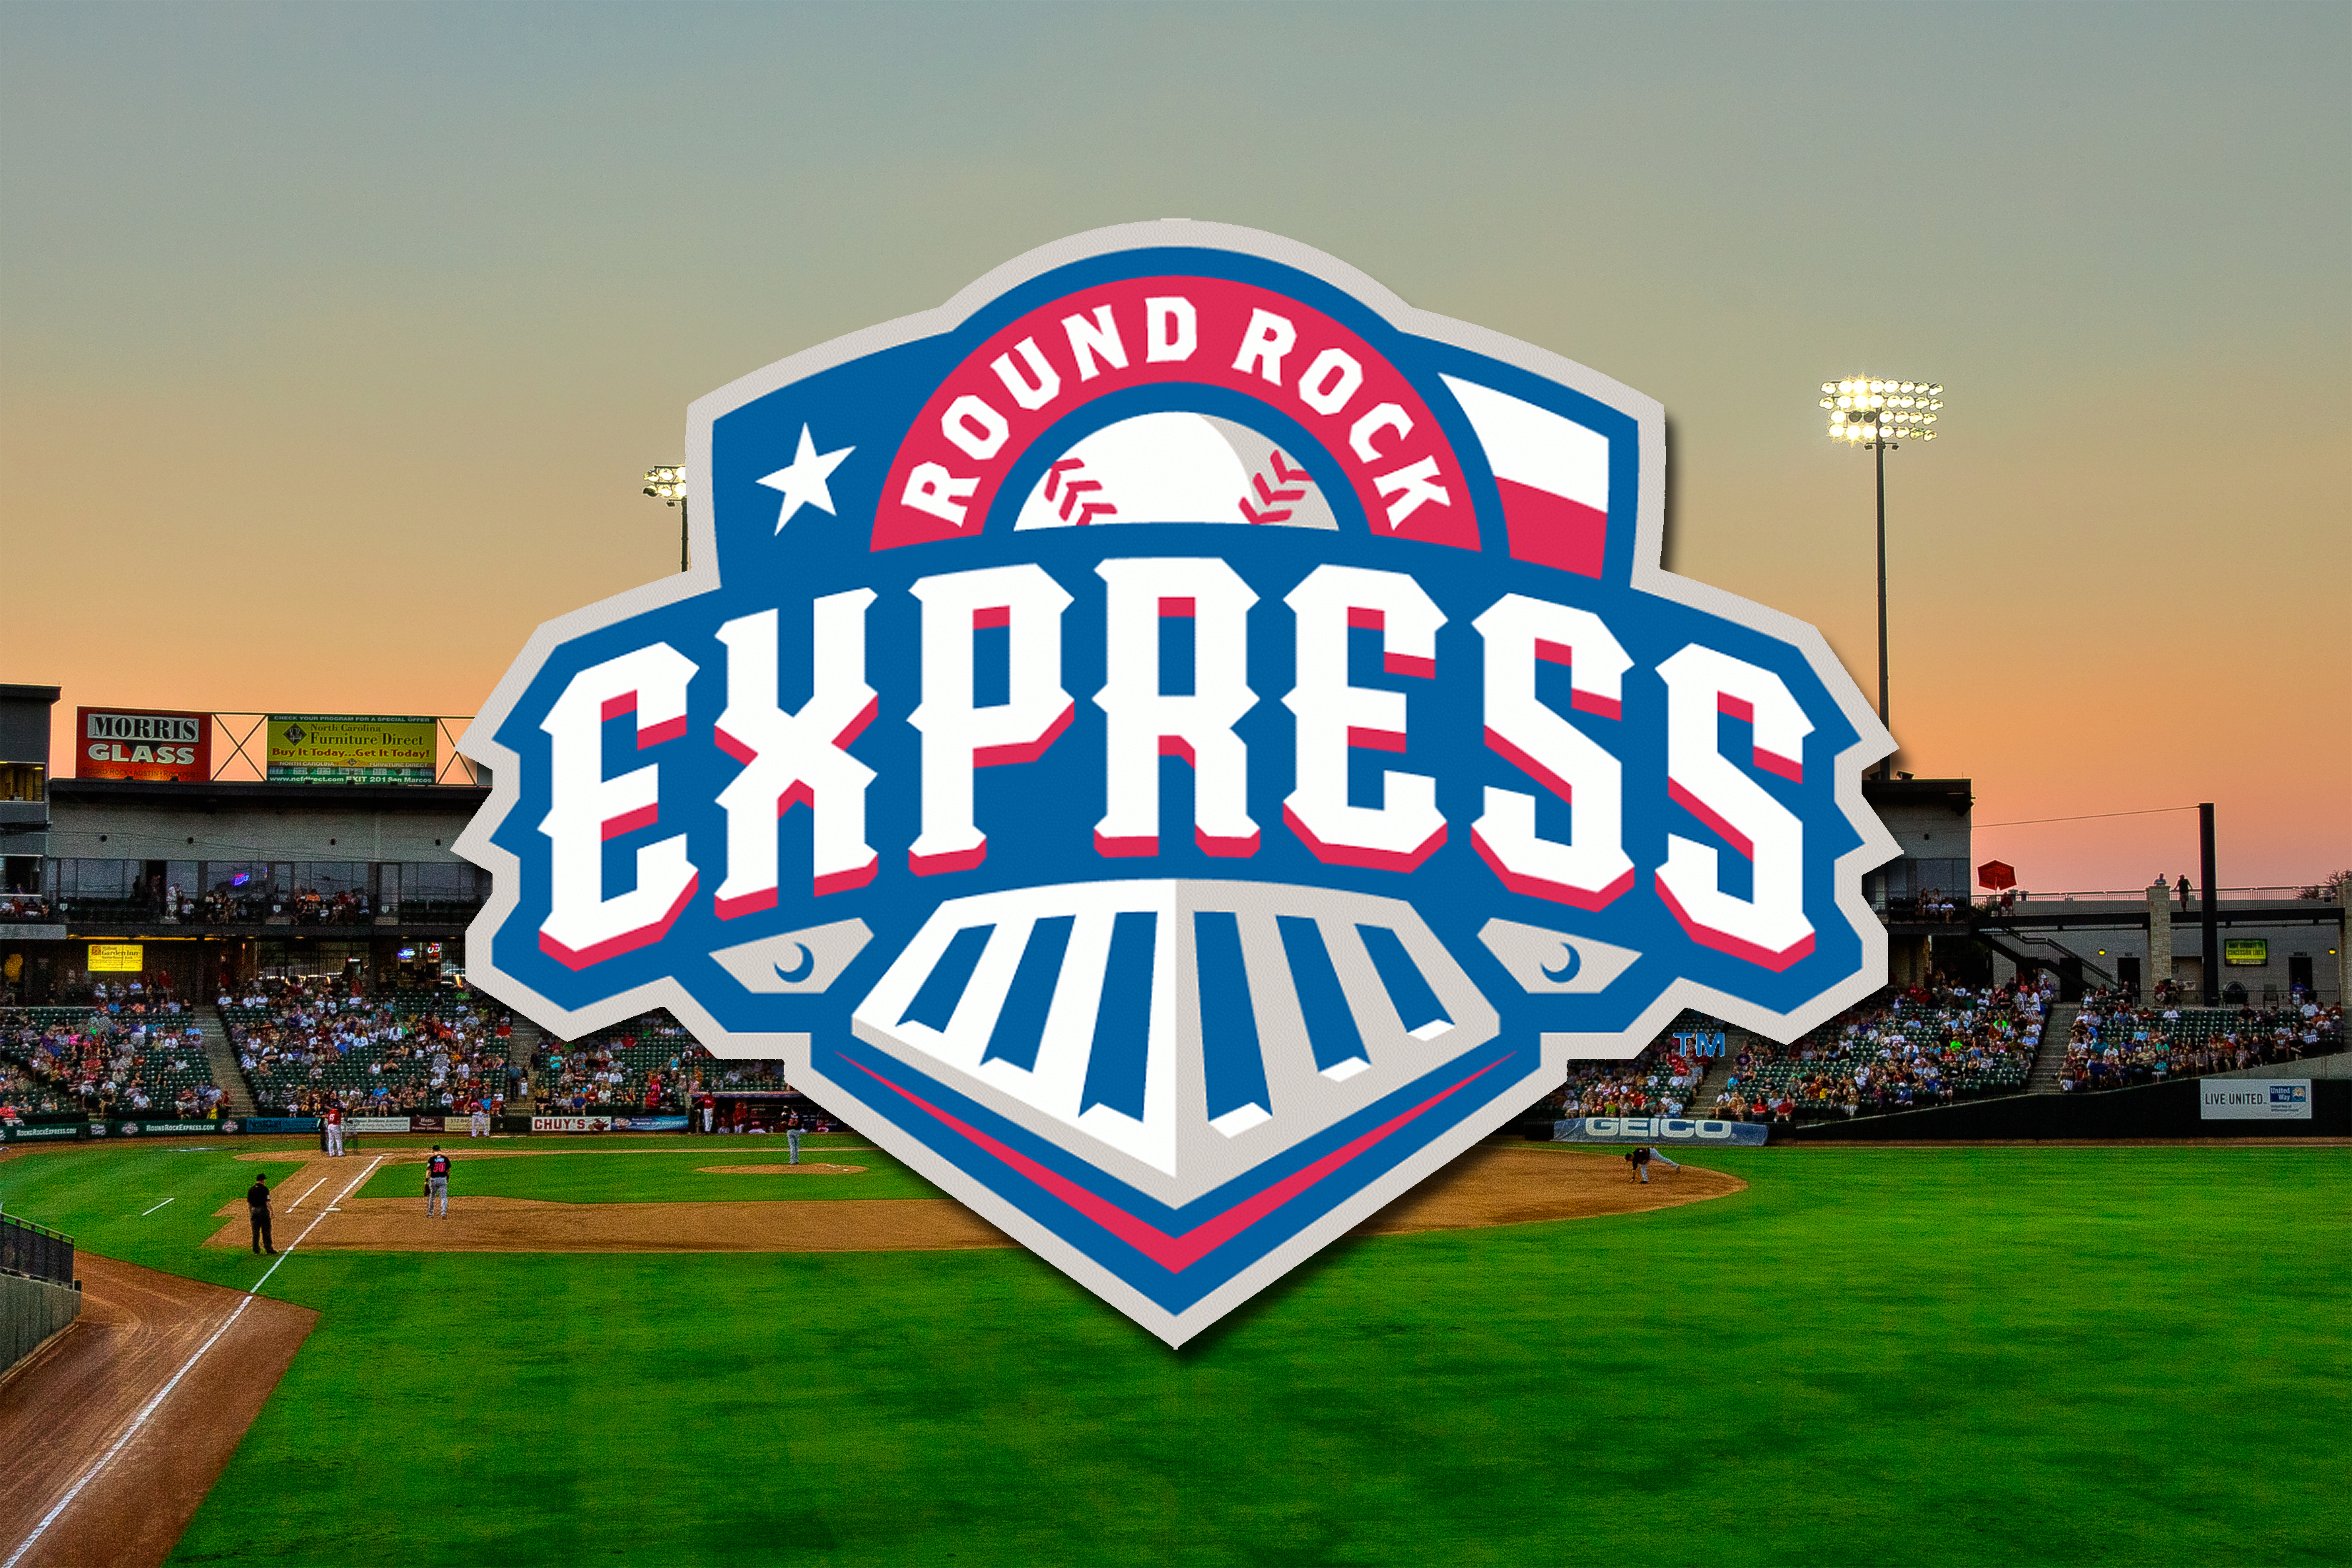 Round Rock Express Wallpapers